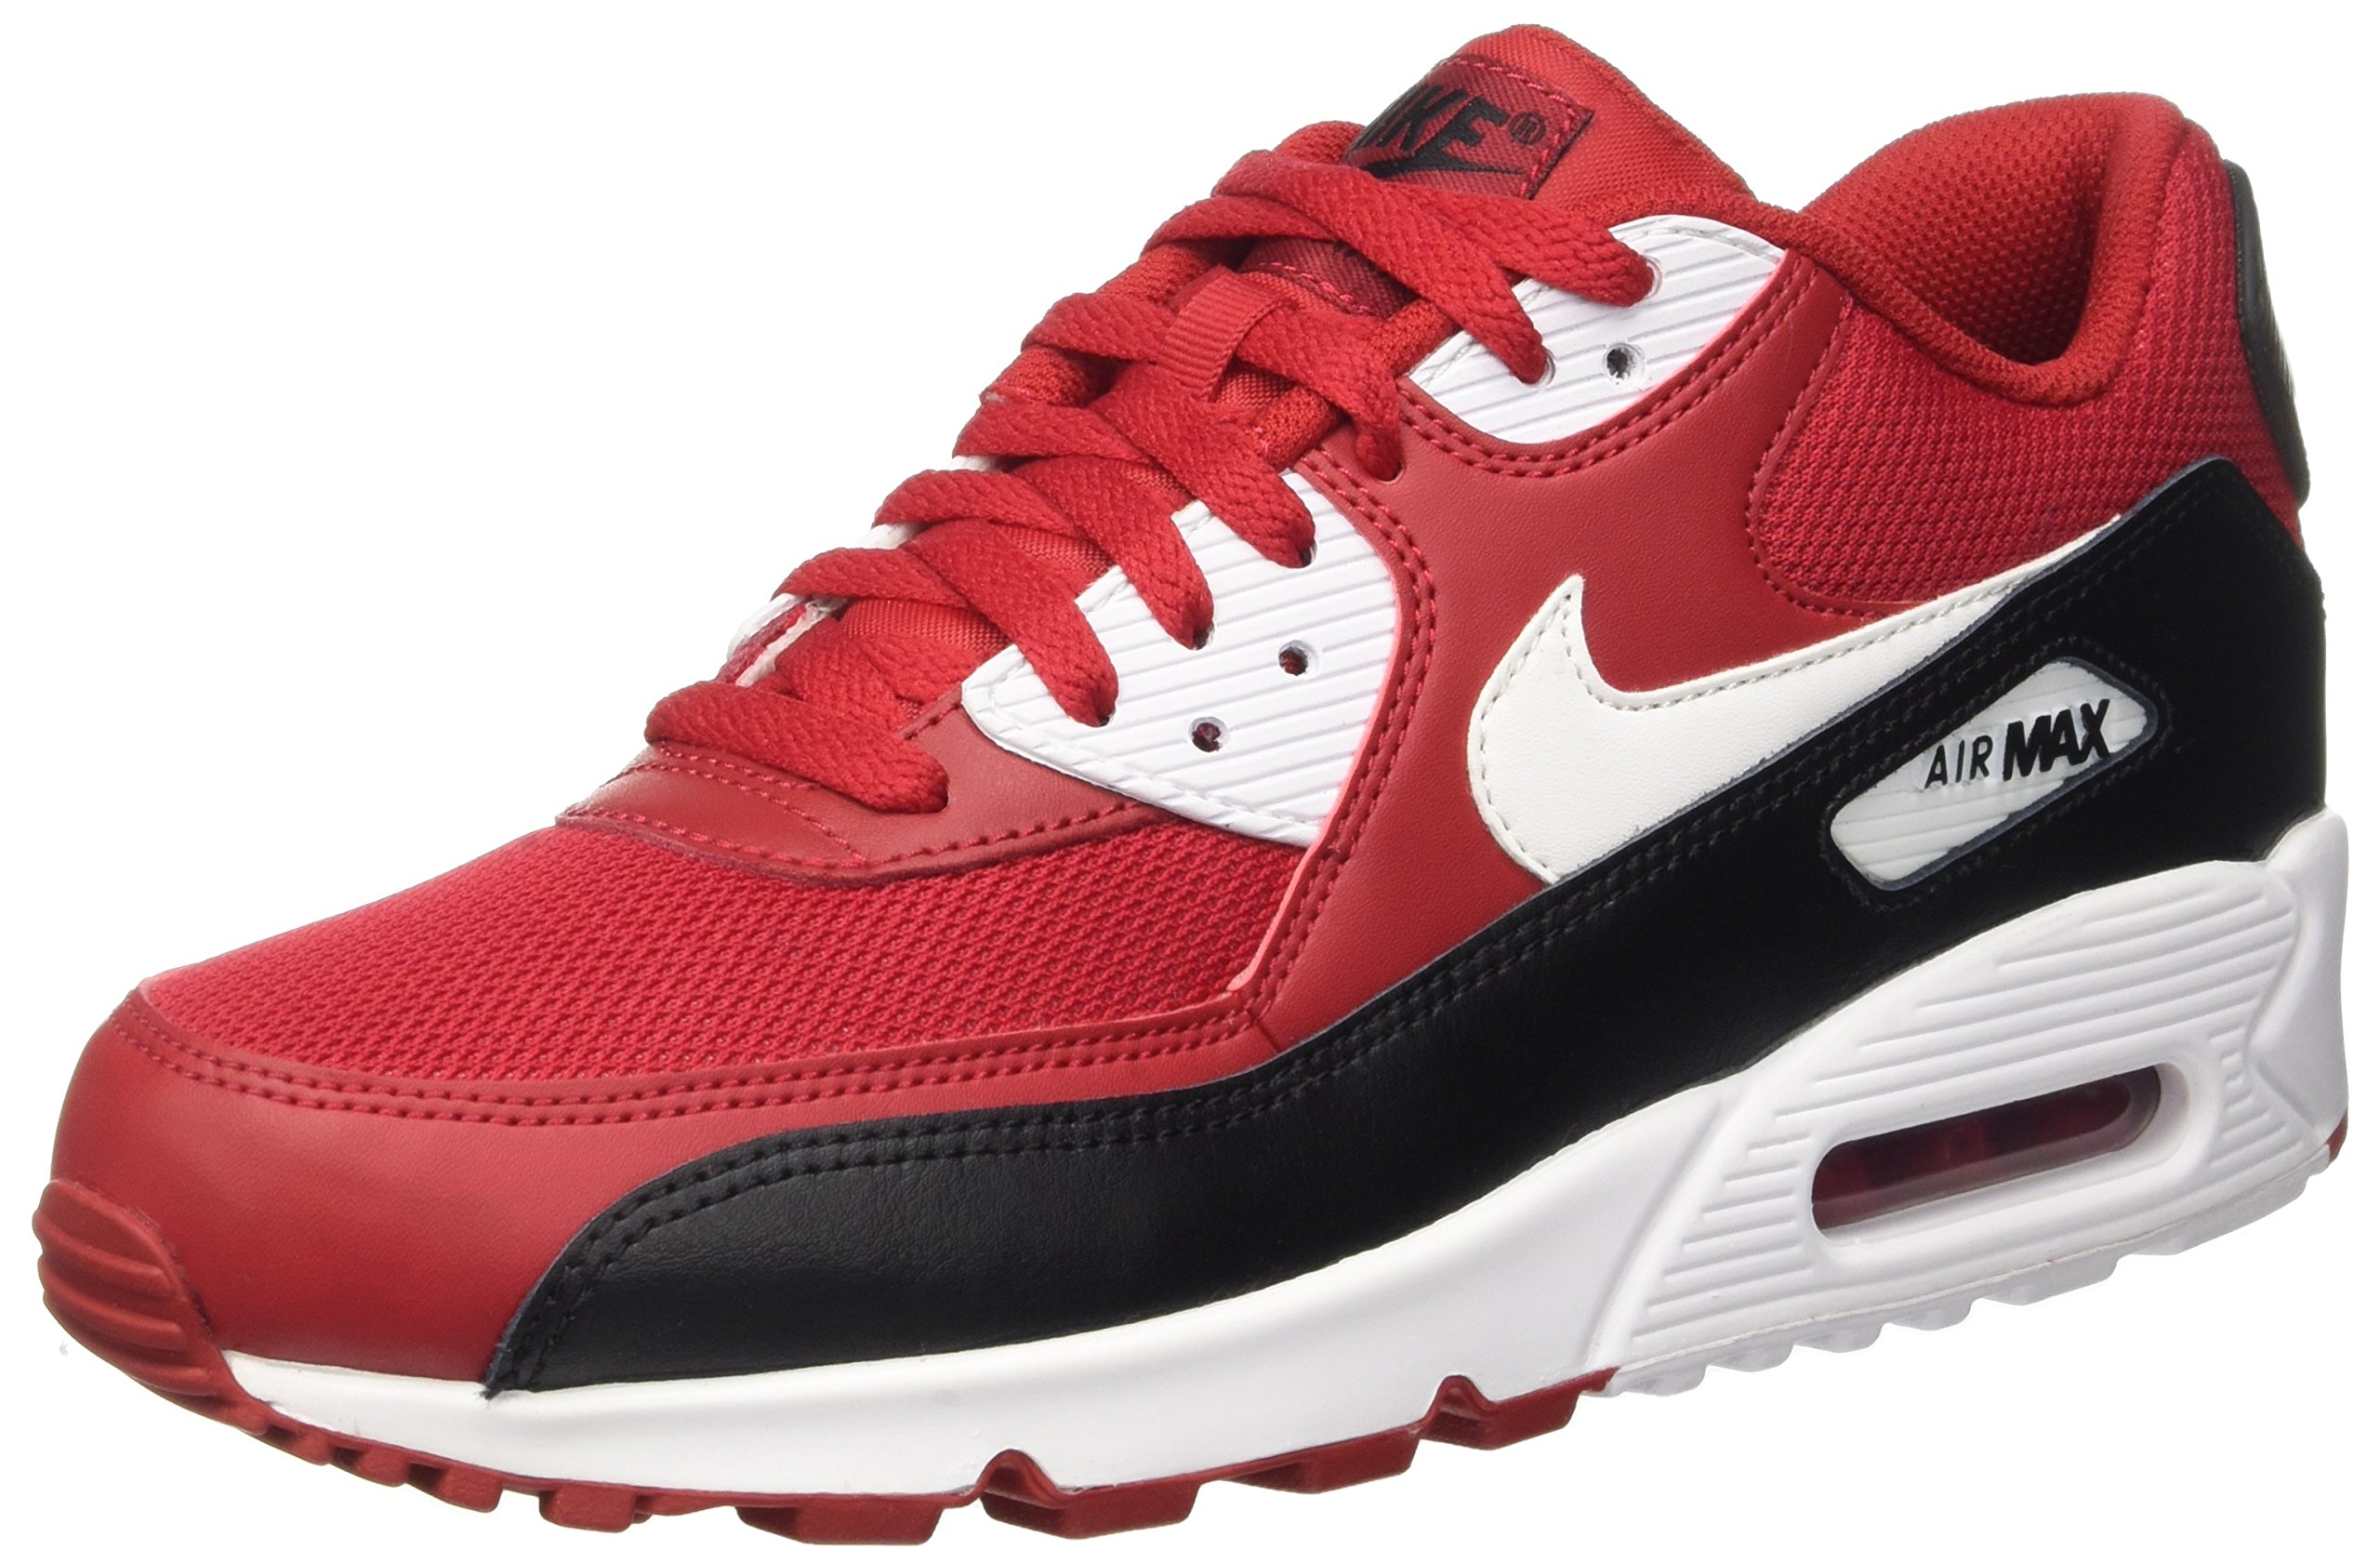 low priced ac435 efdc9 Galleon - Nike Air Max 90 Essential Mens Running Trainers 537384 Sneakers  Shoes (US 7.5, Gym Red White Black White 610)